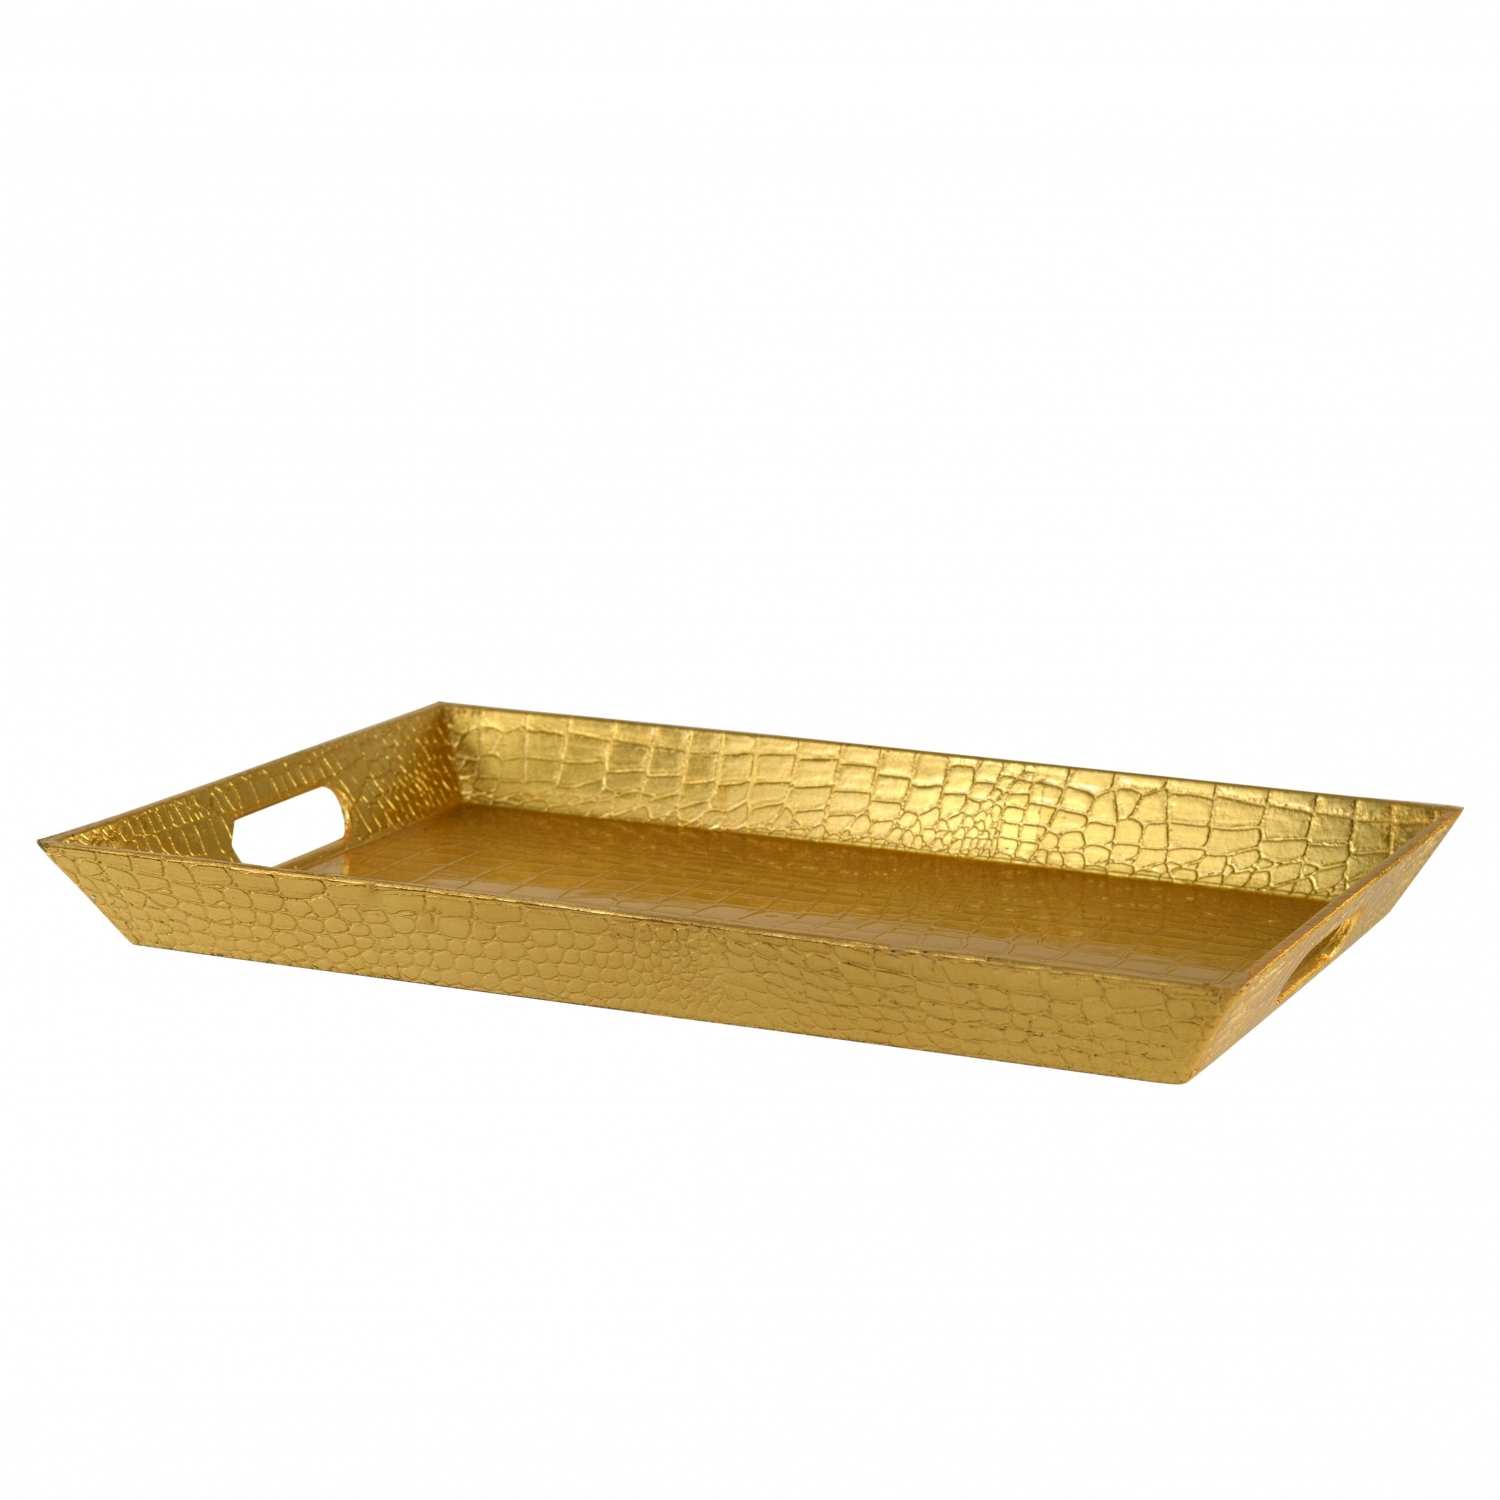 10 Strawberry Street GATR-GLDREC Gold Rectangular Gator Serving Tray 18